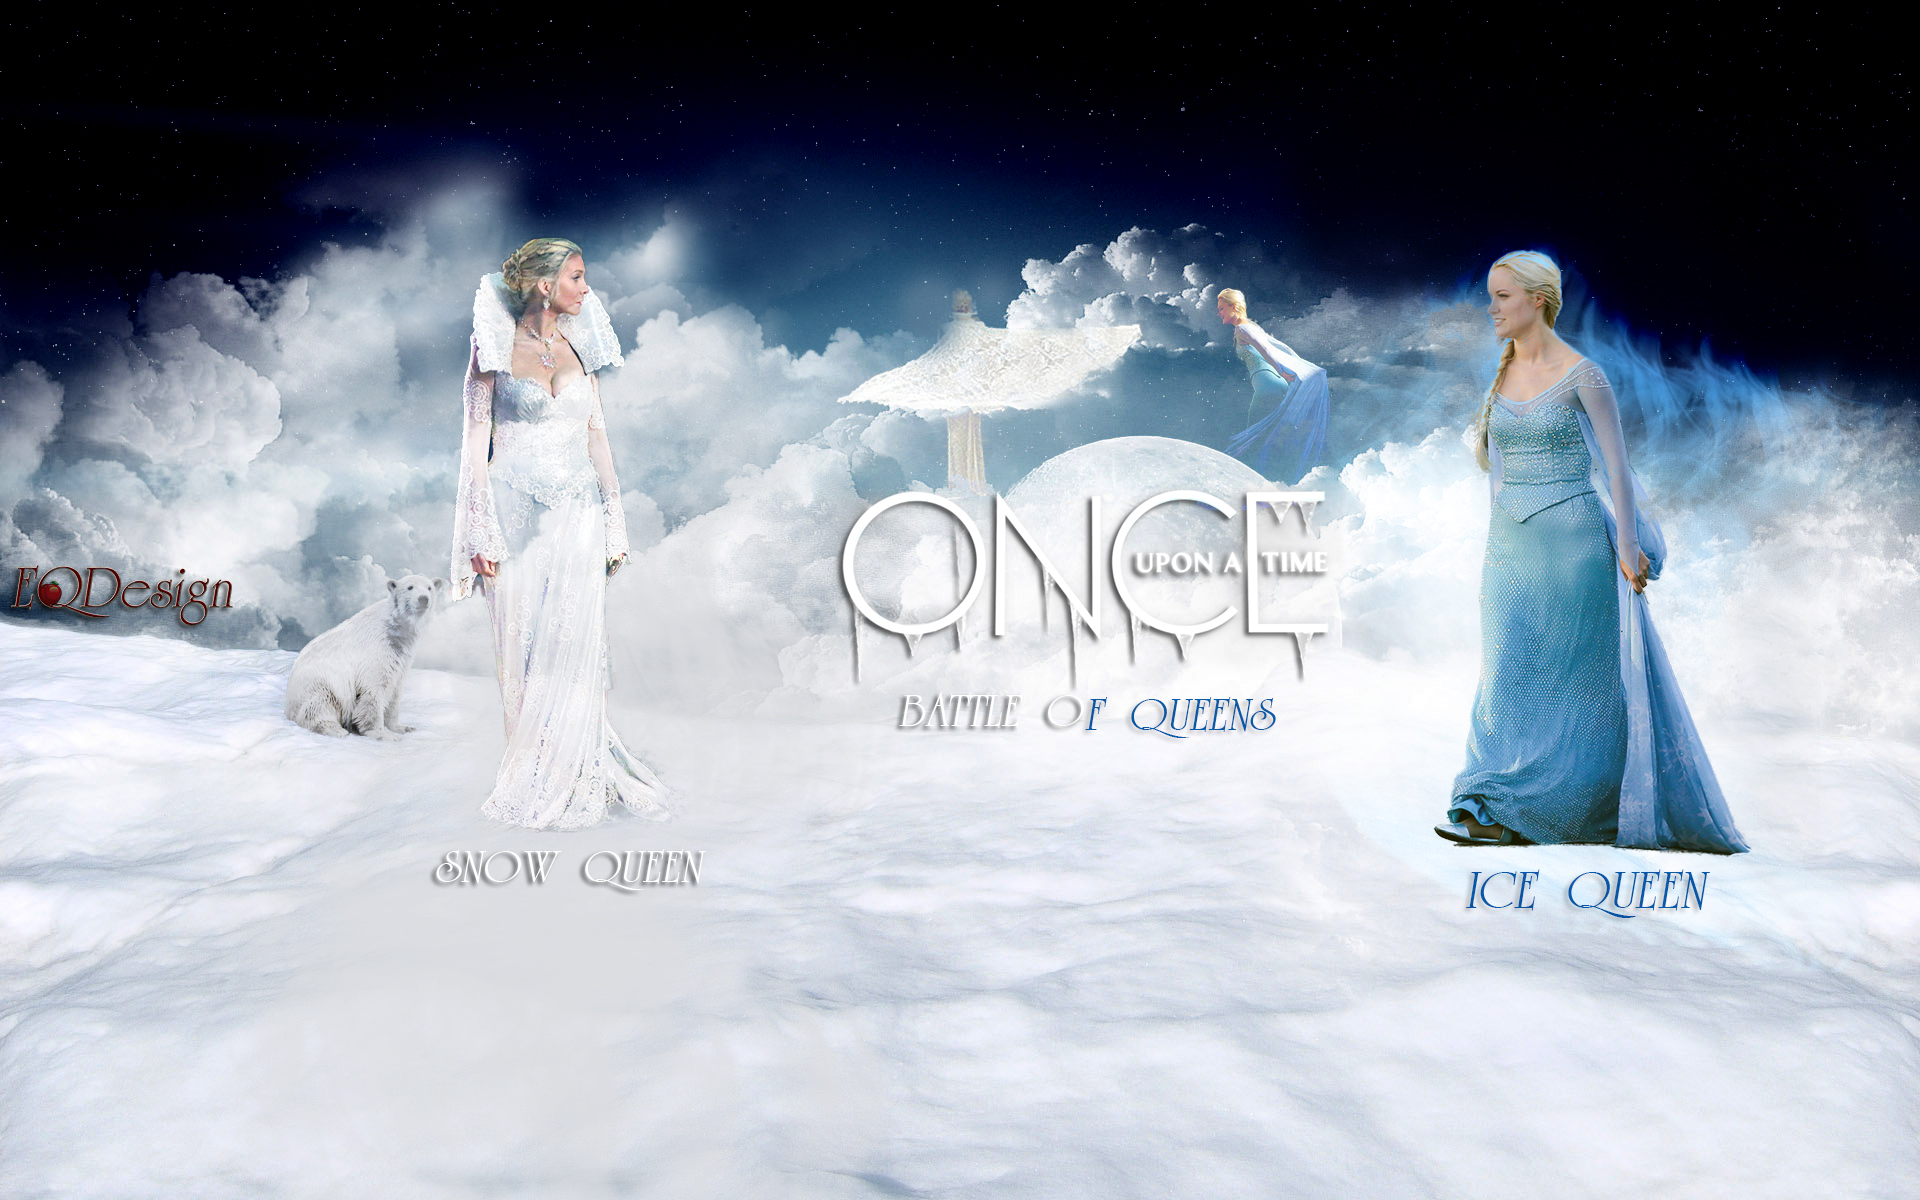 Snow Queen and Ice Queen - Once Upon a Time by eqdesign on DeviantArt